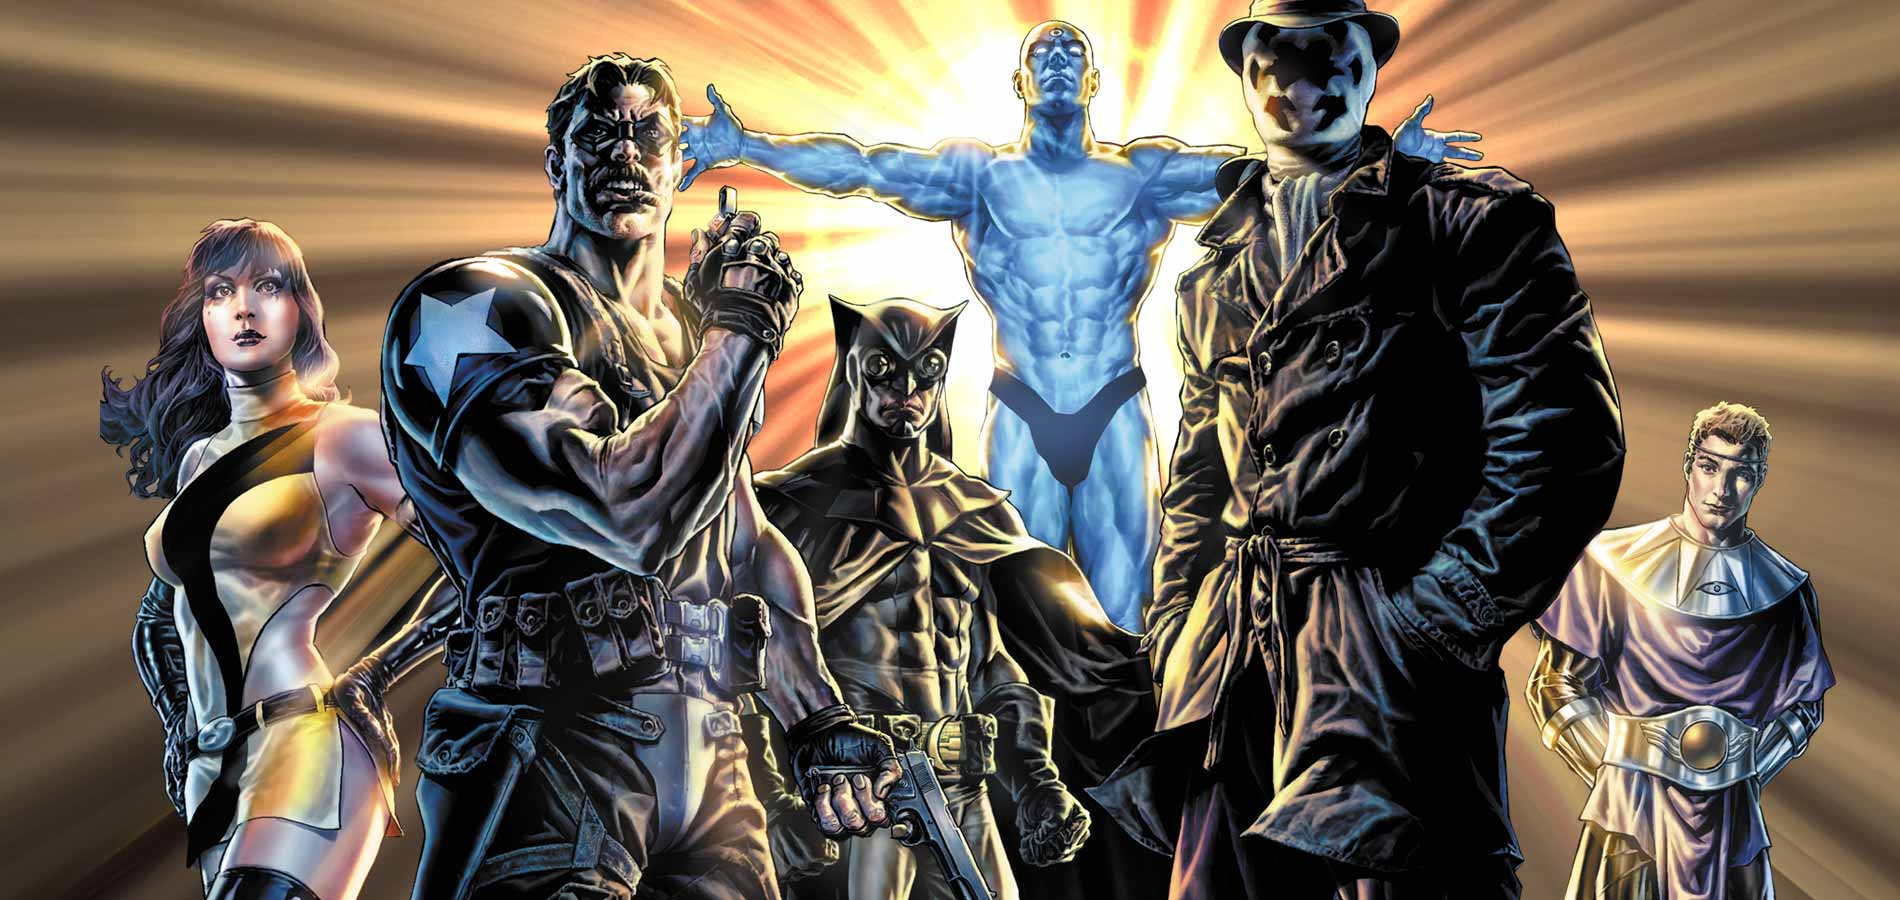 Weekend Hollywood News - The Watchmen are coming to TV - June 25, 2017